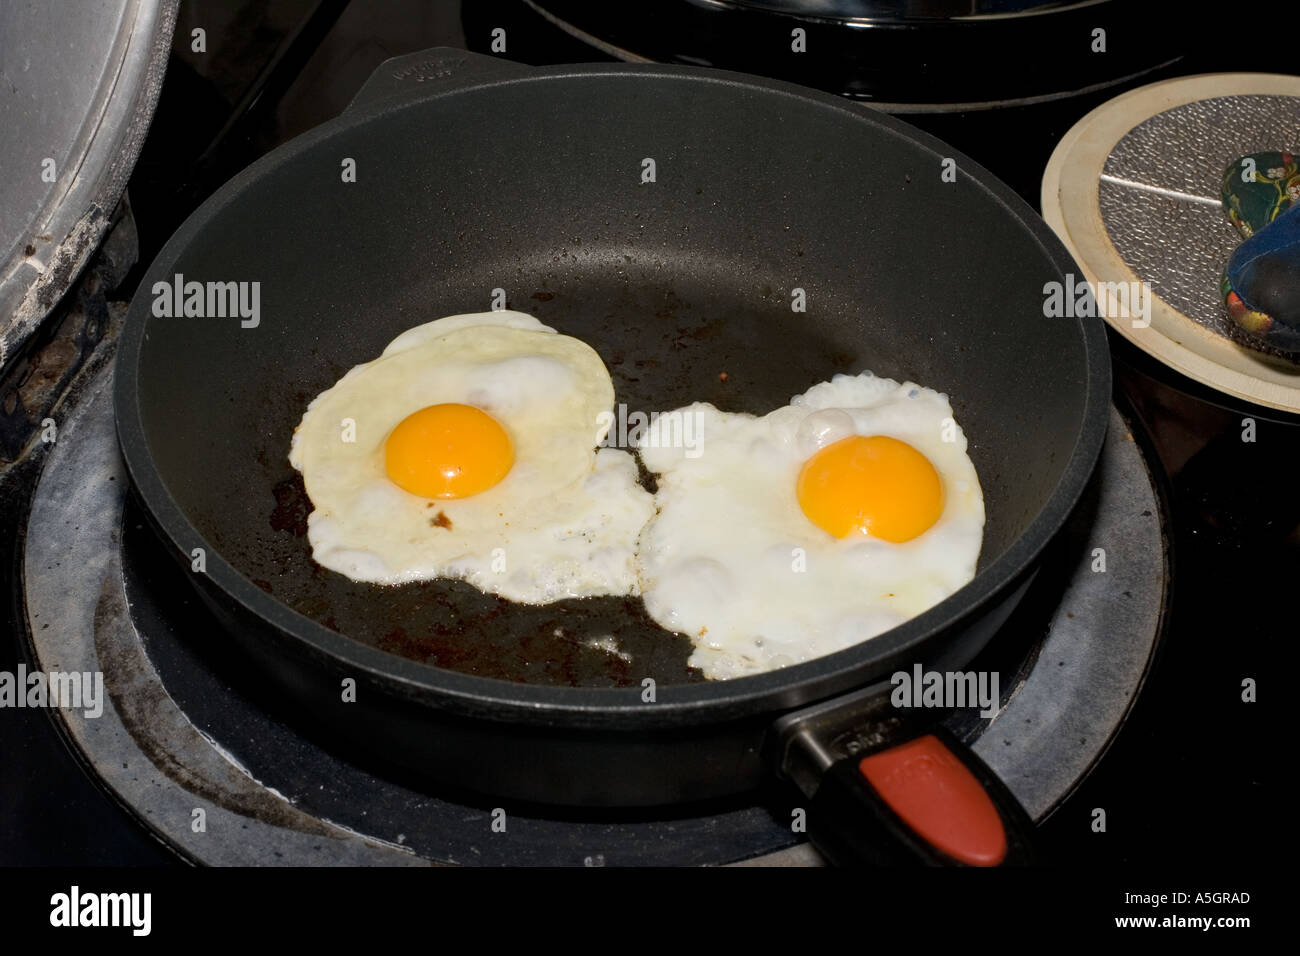 Two eggs frying in large black teflon pan Cotswolds UK - Stock Image